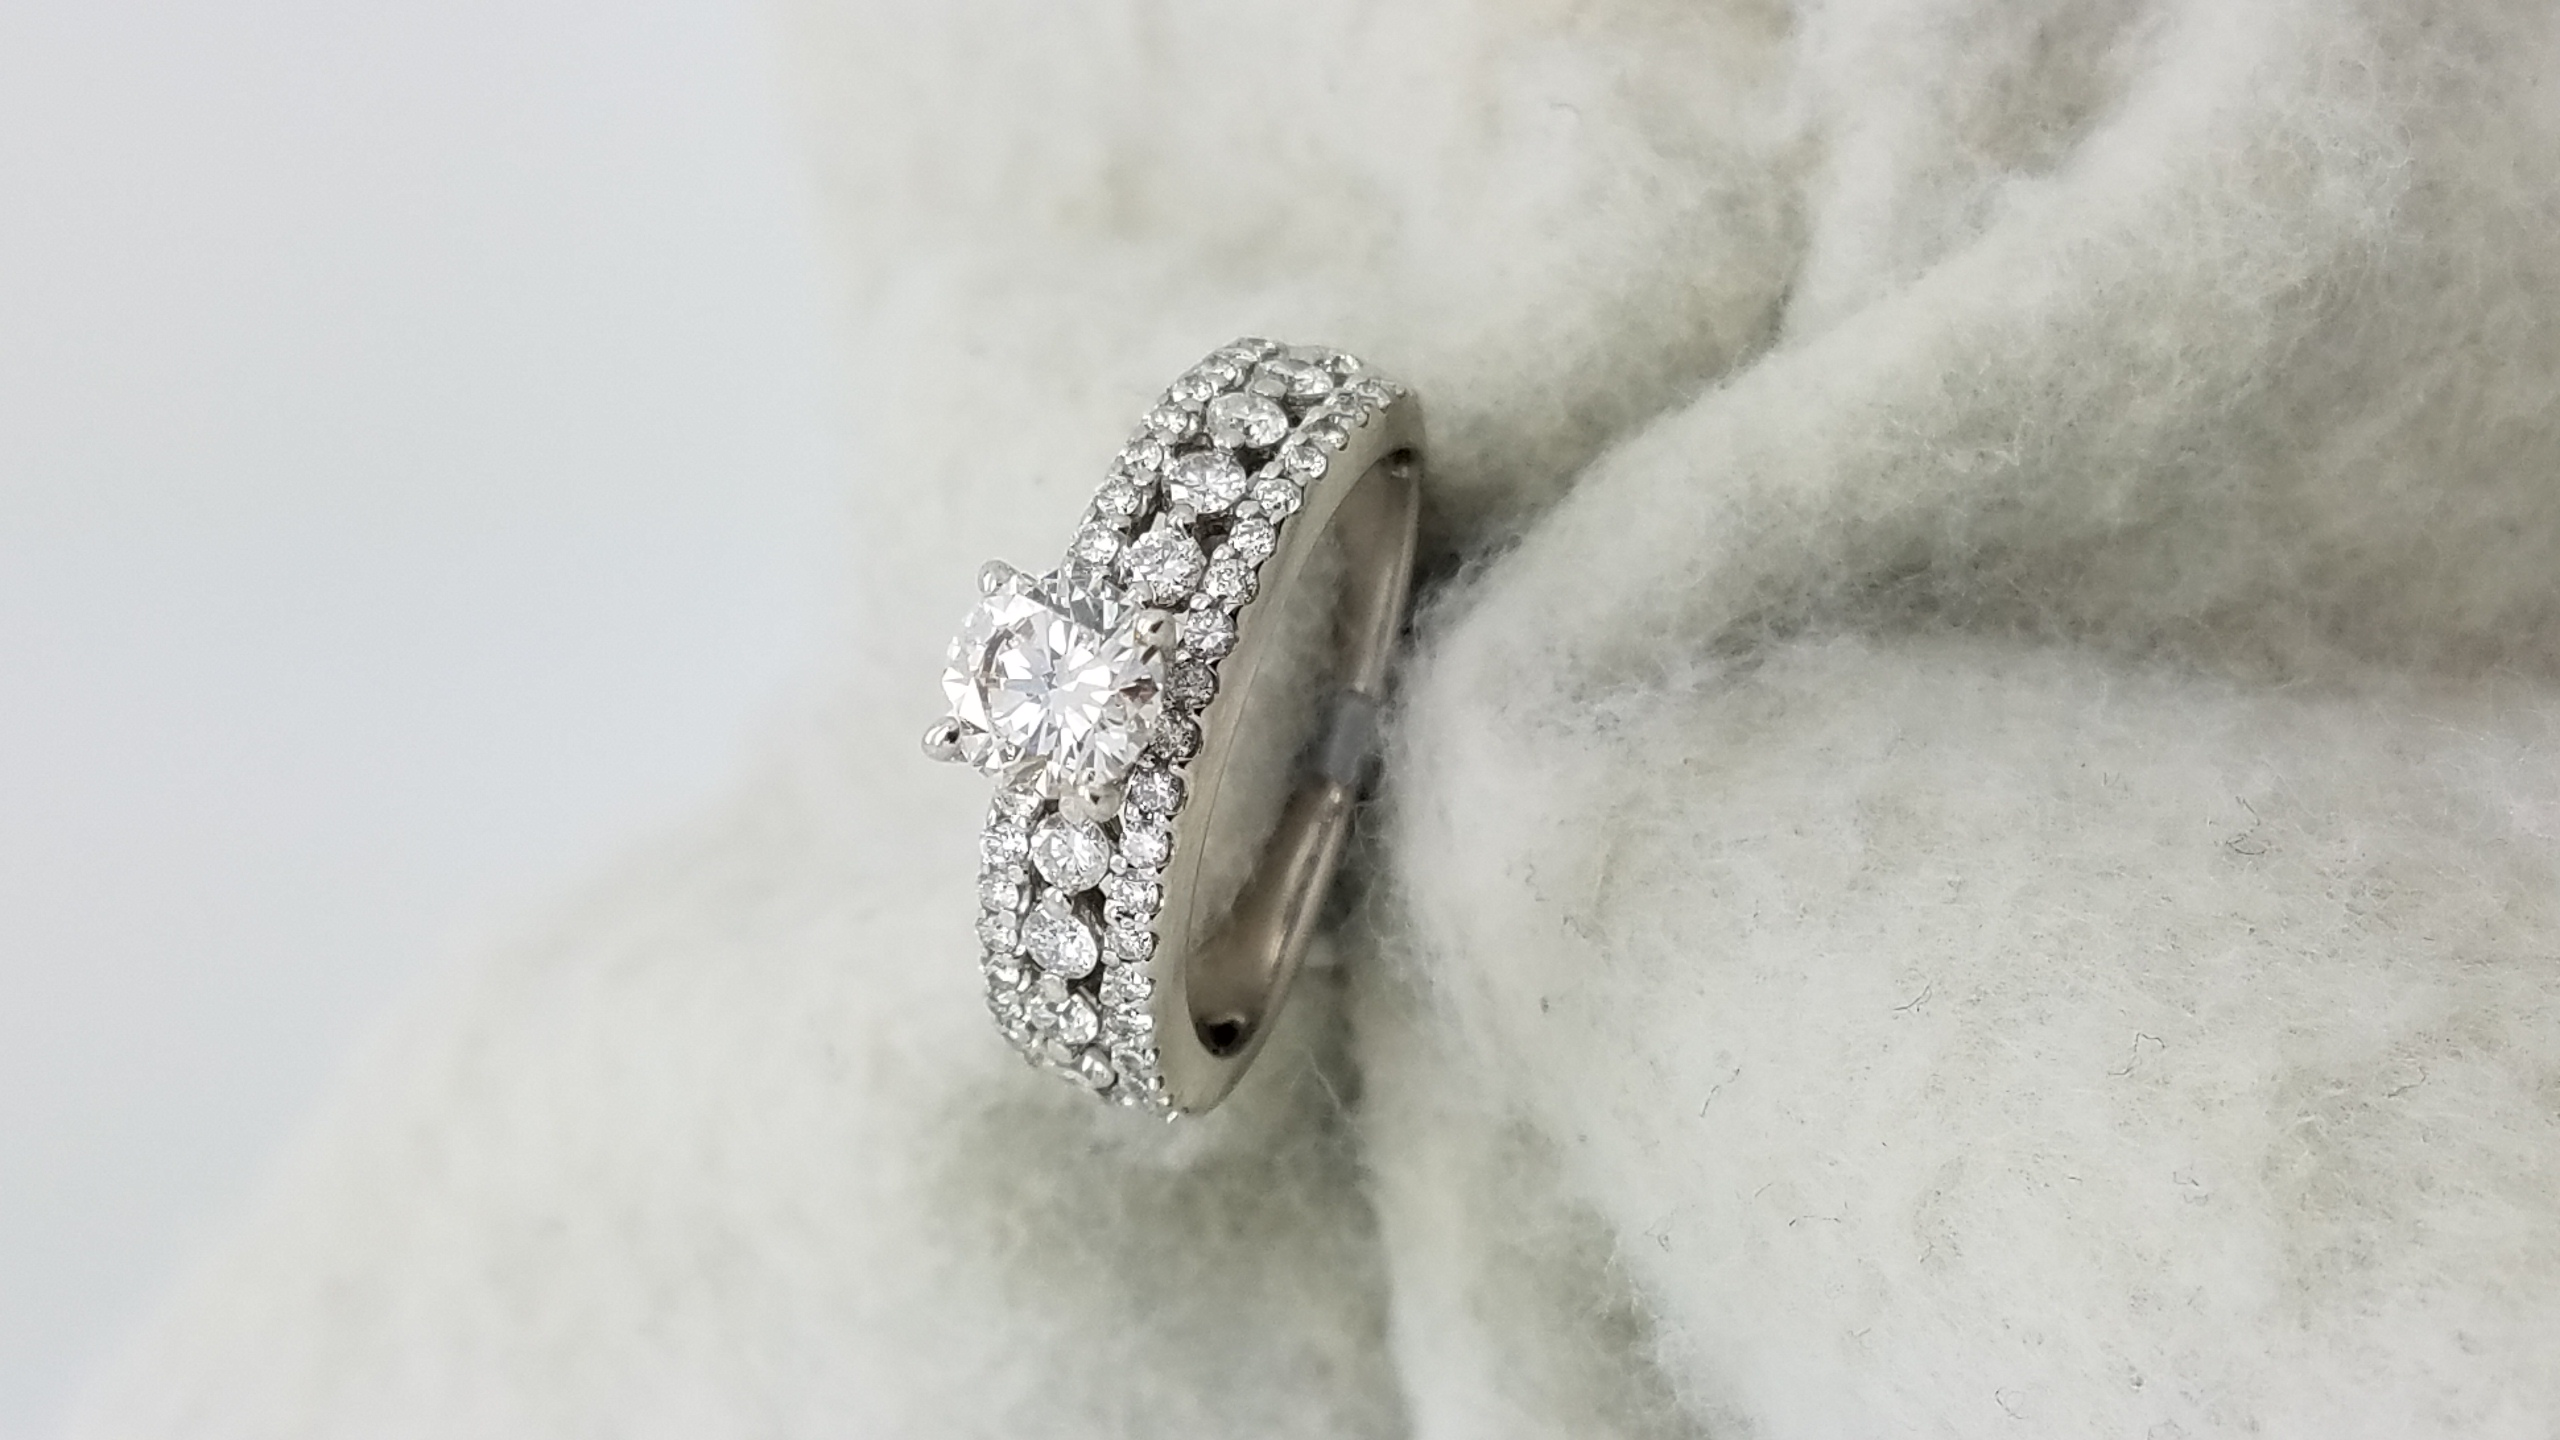 14K	White Gold	Lace style mounting	.57 + .65	ct.	R	Cut	Diamond	H	VS2	4-prong/pave	Solitaire with Accents	Engagement-Ring